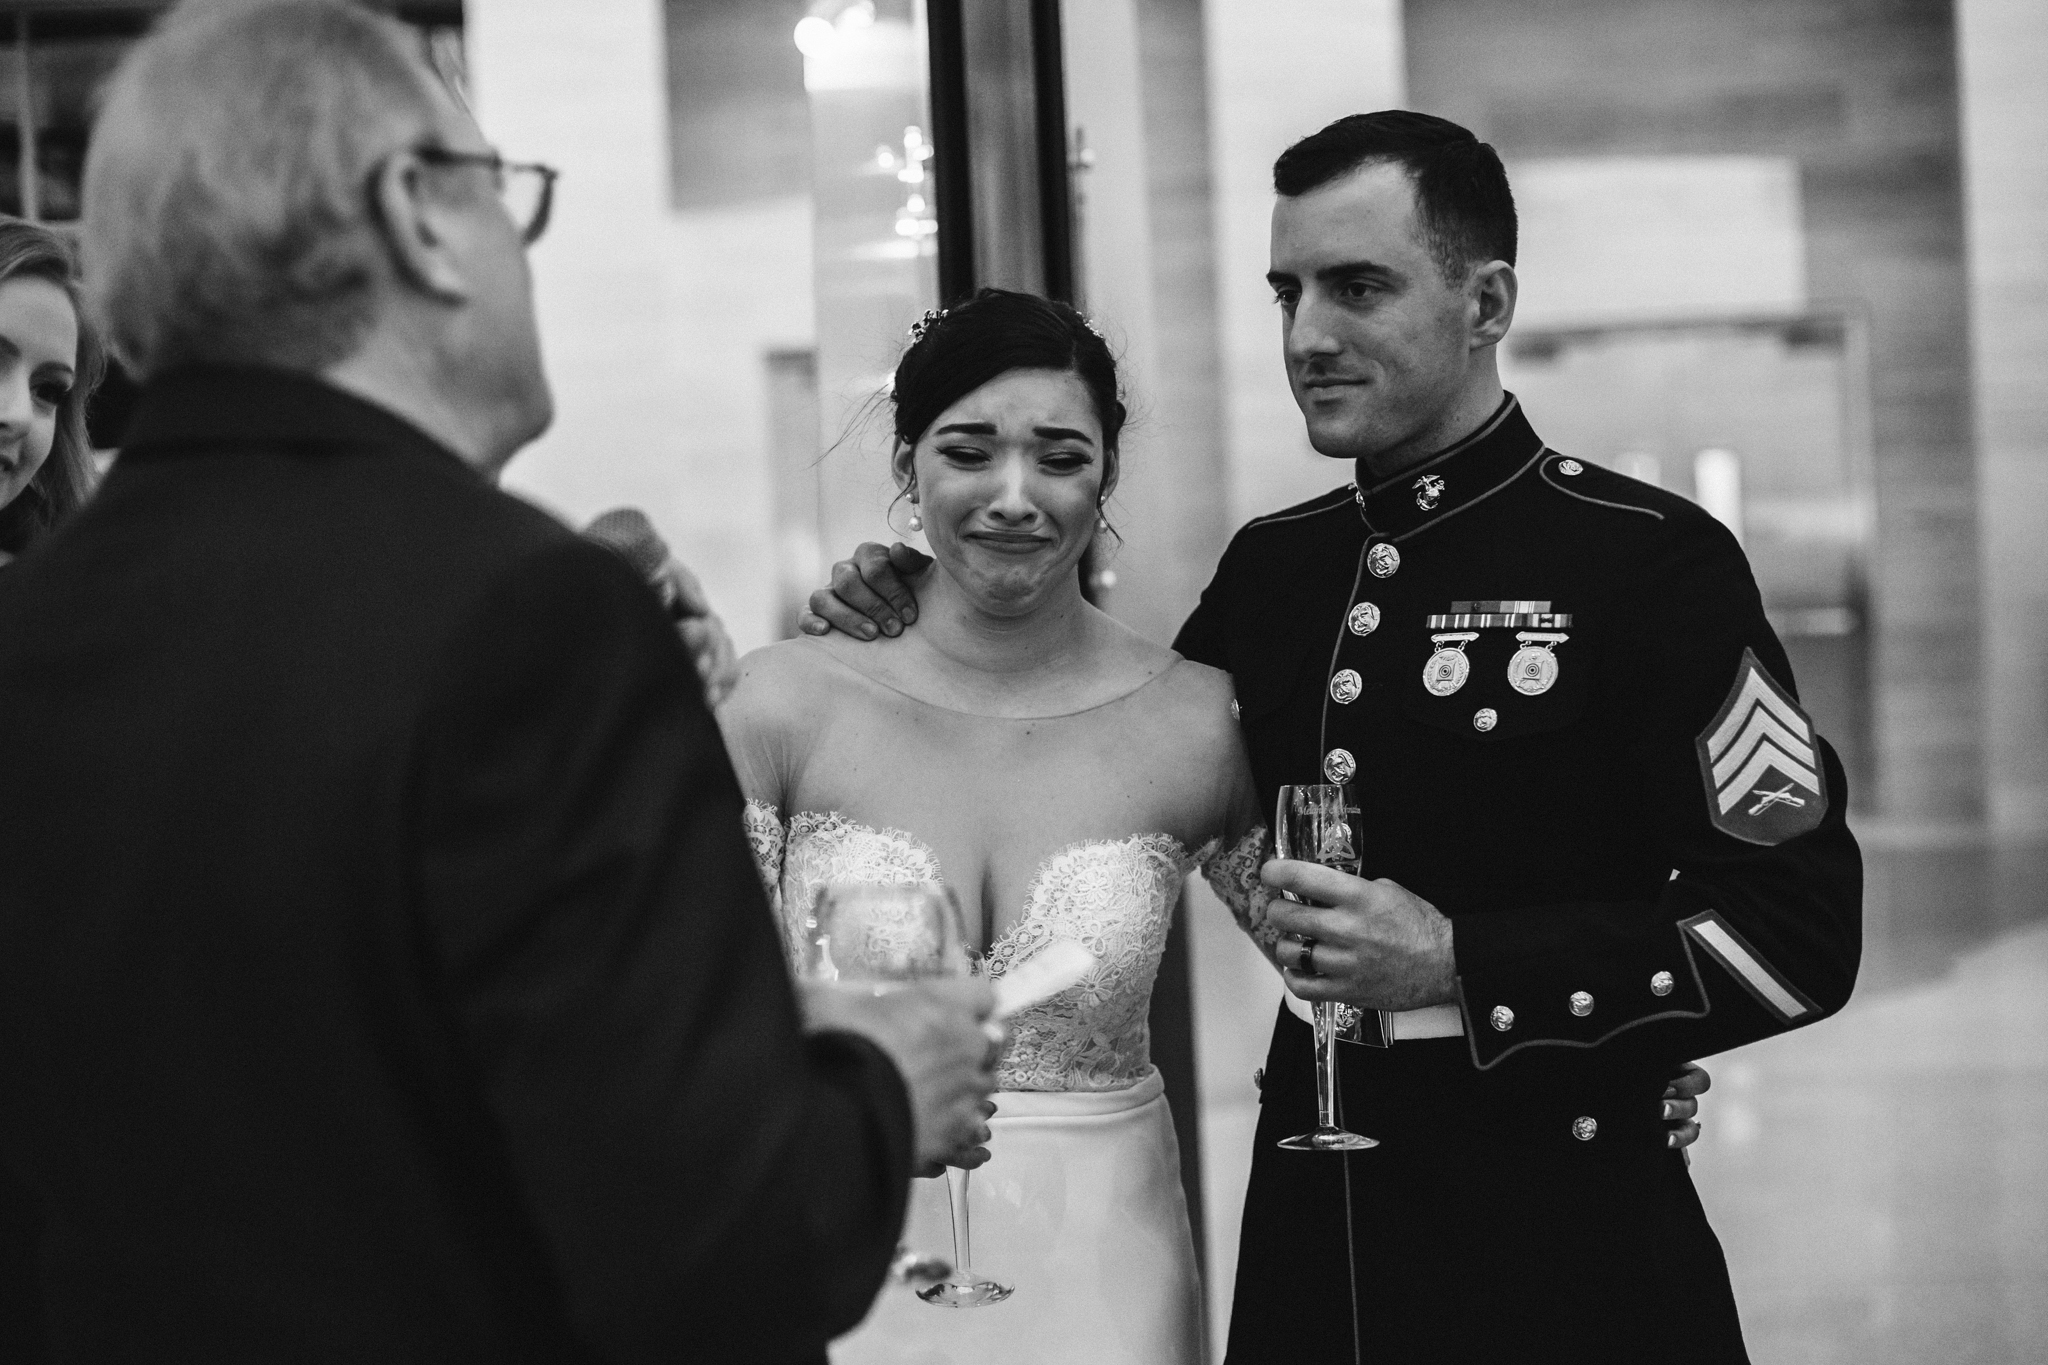 solinsky_wedding_national_museum_of_marine_corp-31.jpg